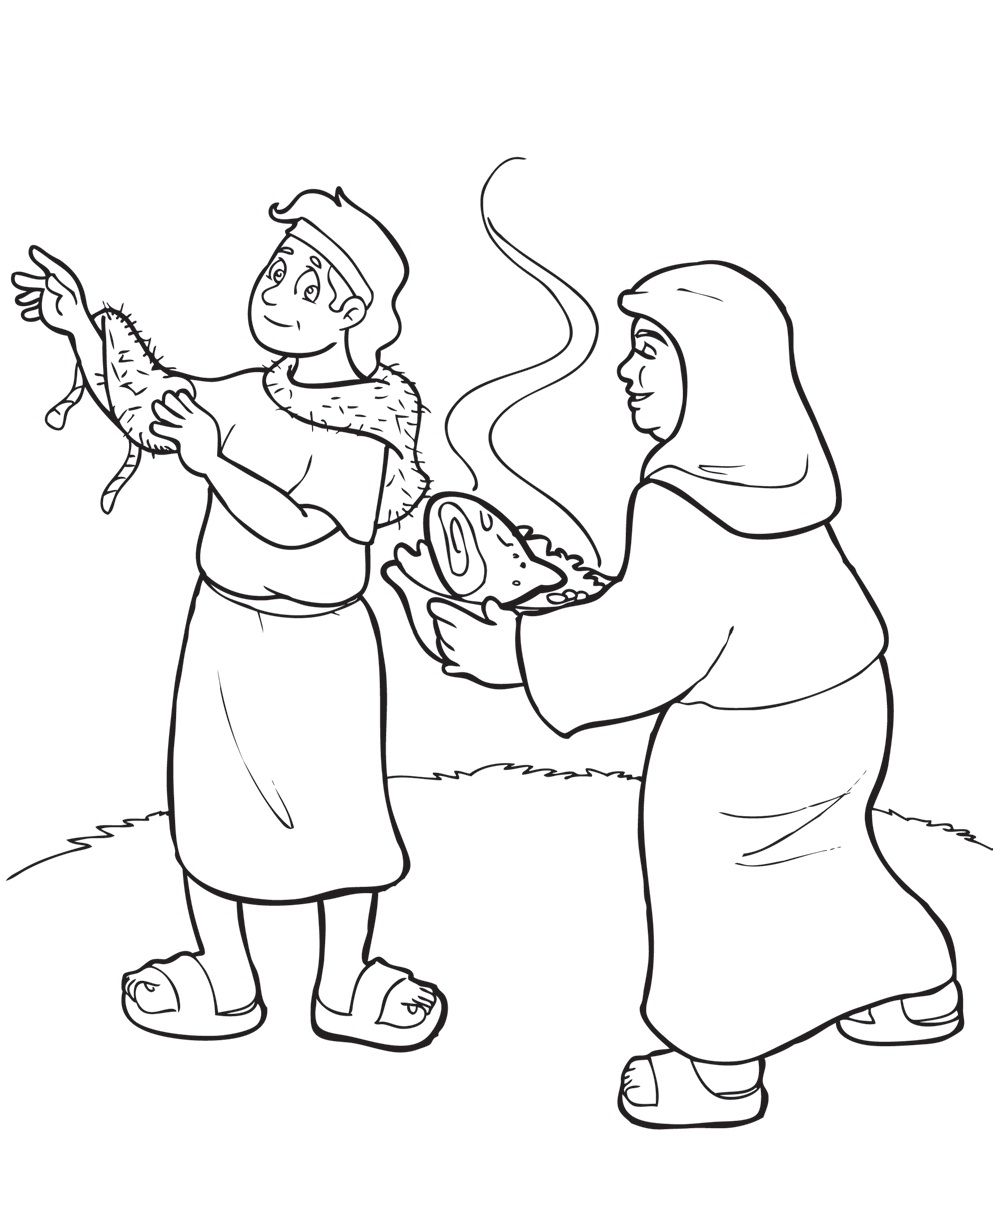 993x1225 Coloring Pages Esau Forgives Jacob Christianity Bible